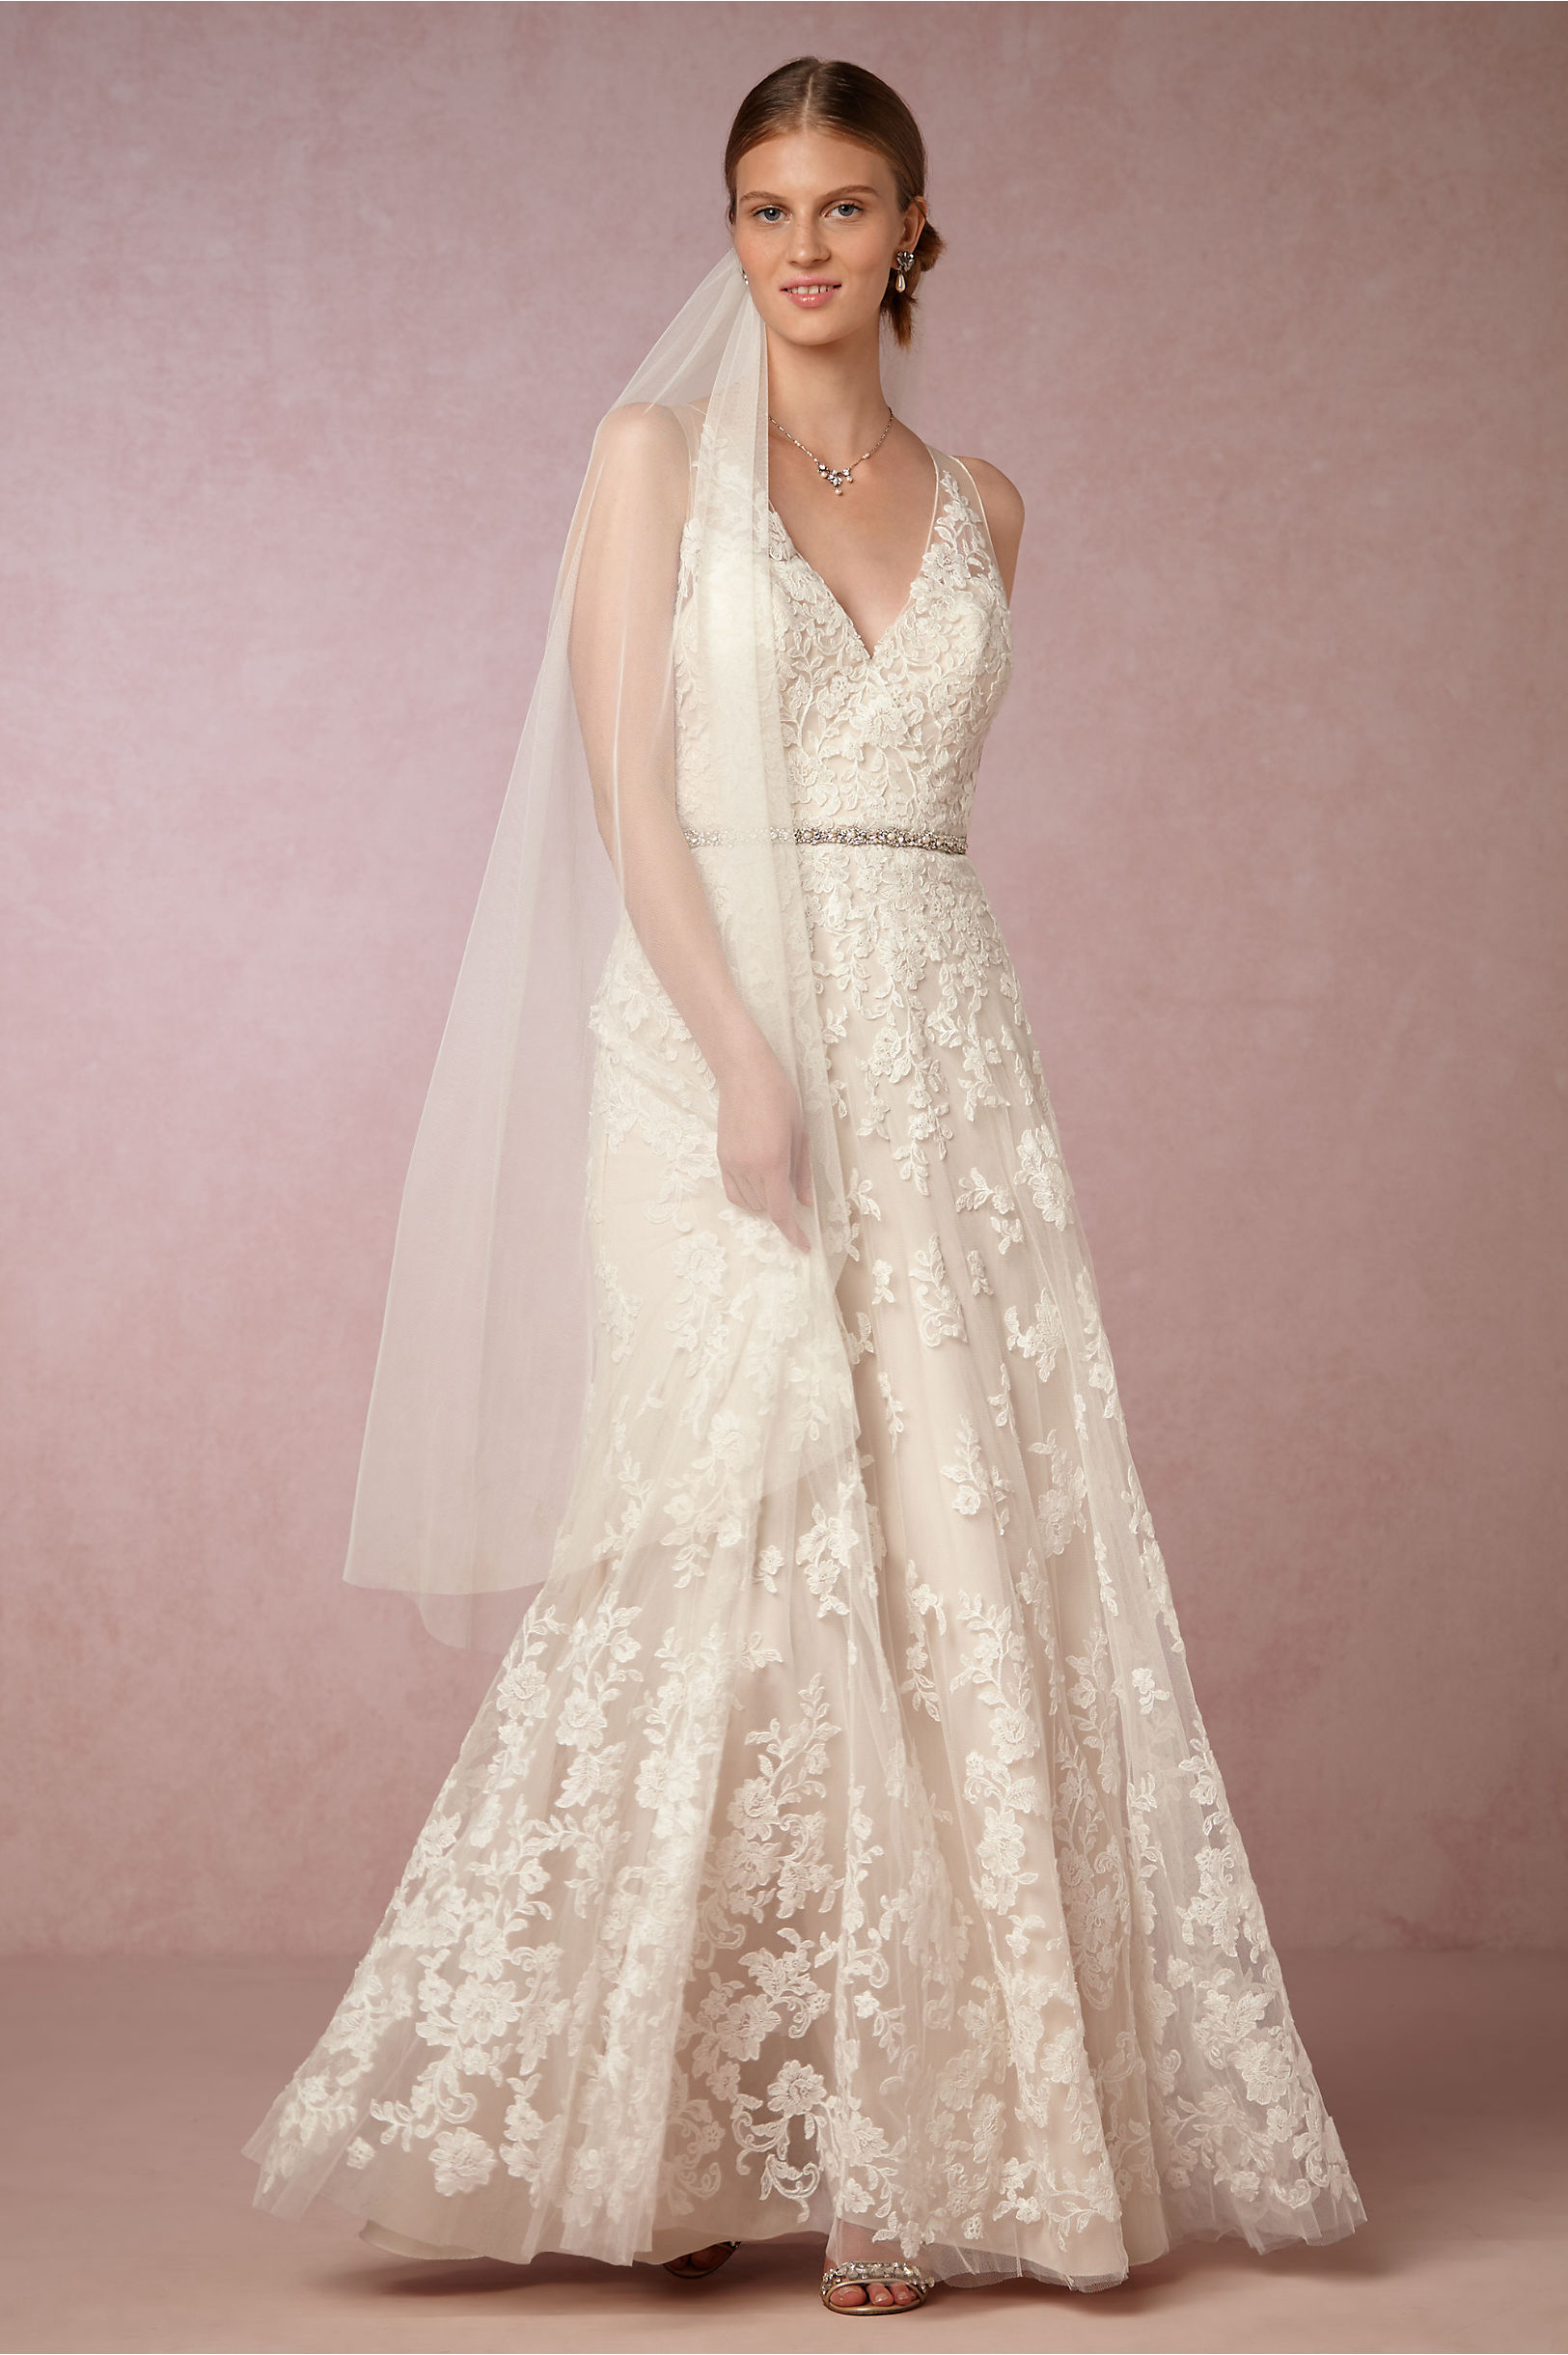 blaire gown wedding dresses for sale Ivory cream Blaire Gown BHLDN